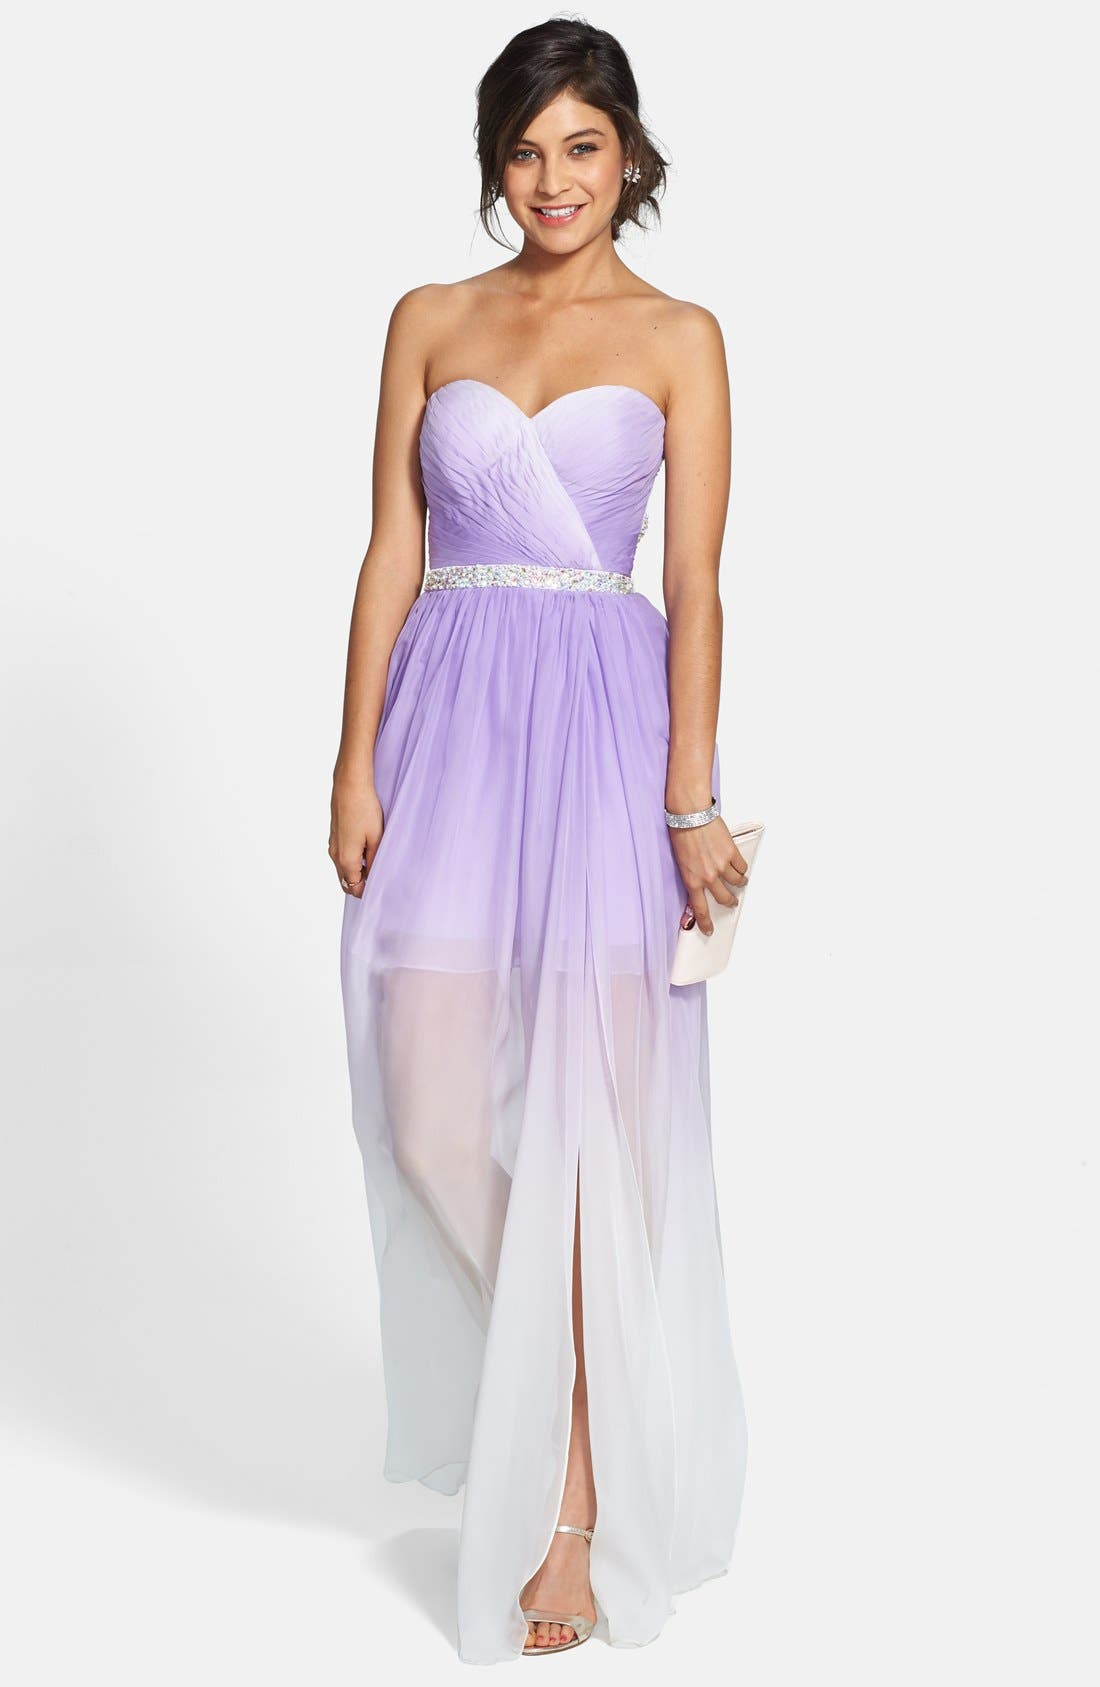 Ombré Chiffon Gown,                             Main thumbnail 1, color,                             530